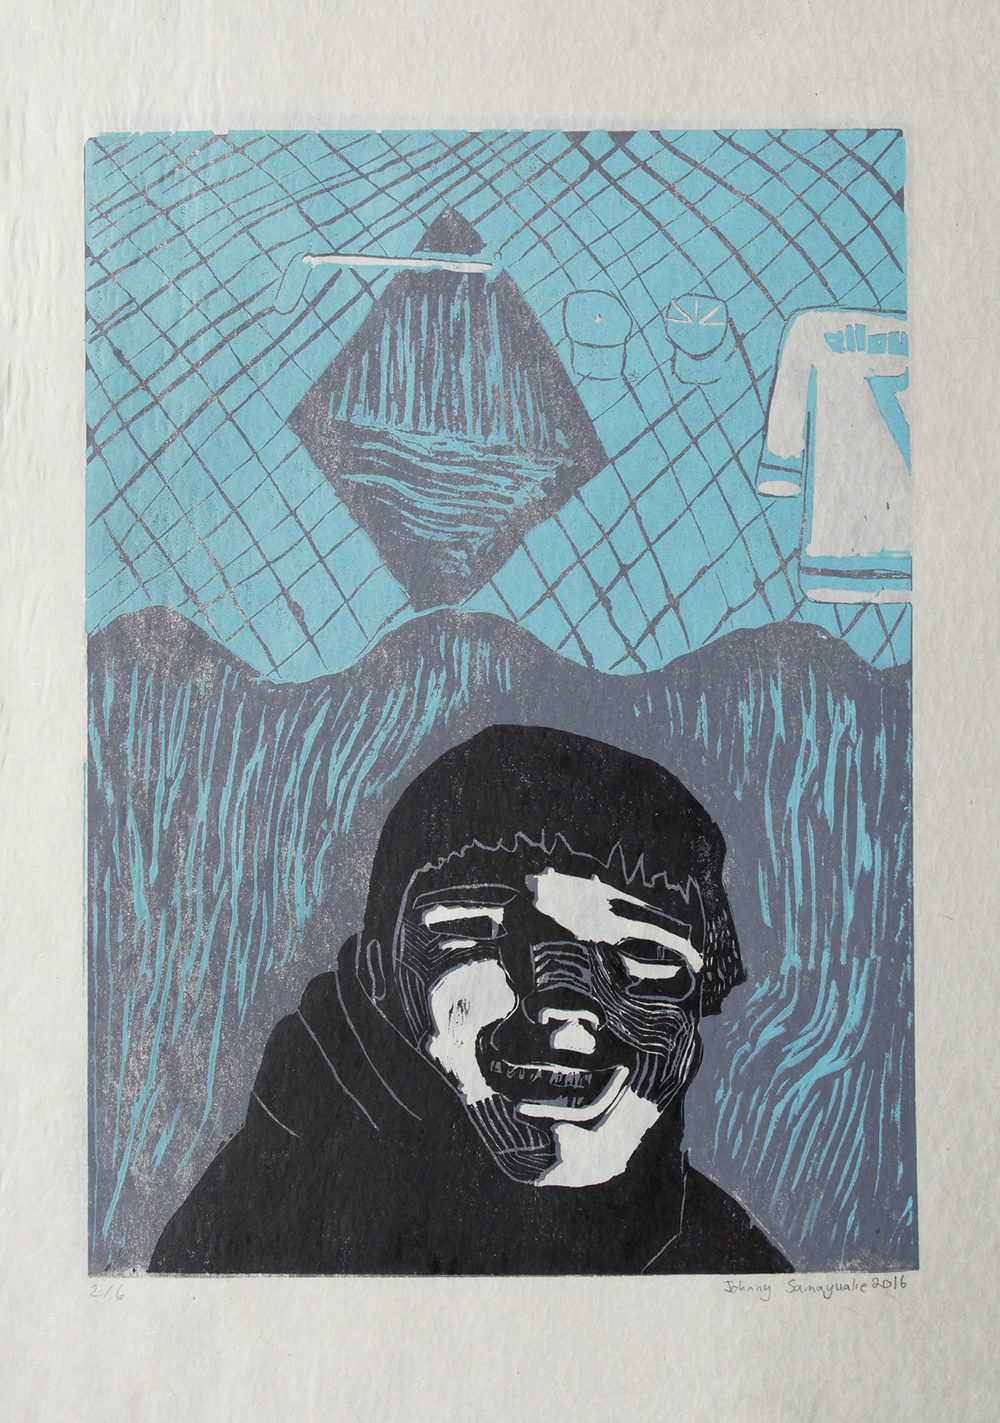 Uvanga: Self-Portrait   Johnny Samayualie  Two-Layer Linocut on Washi  15.5 x 21.5""